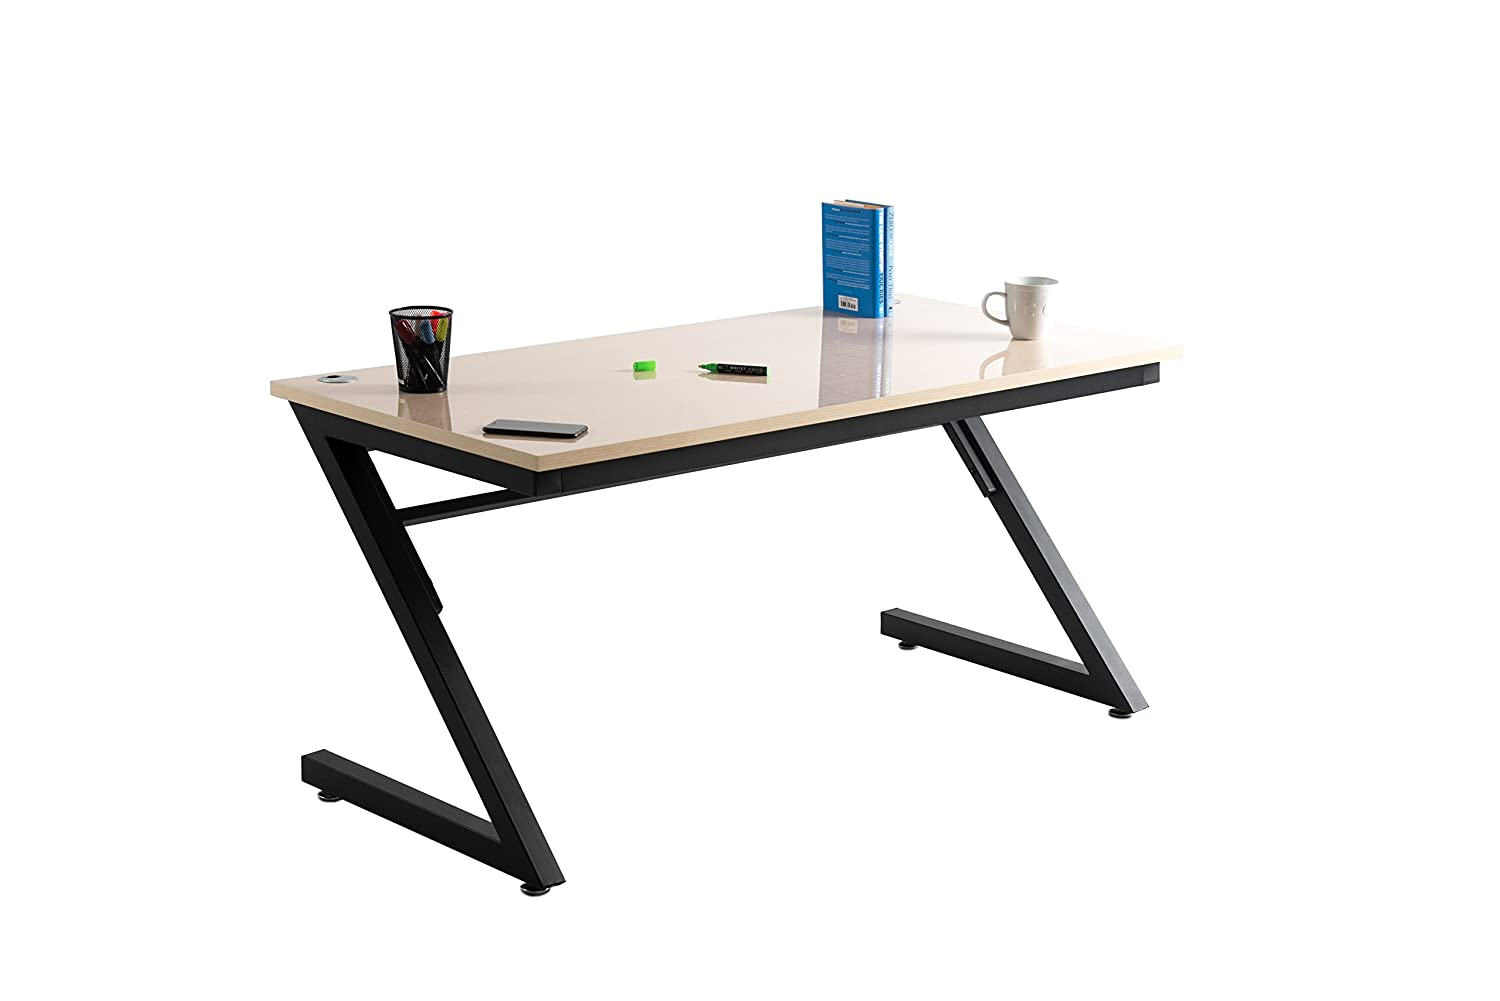 Writeyboard dry erase desk home study table computer desk for office wooden furniture writing workstation fineboard creative surface birchwood black